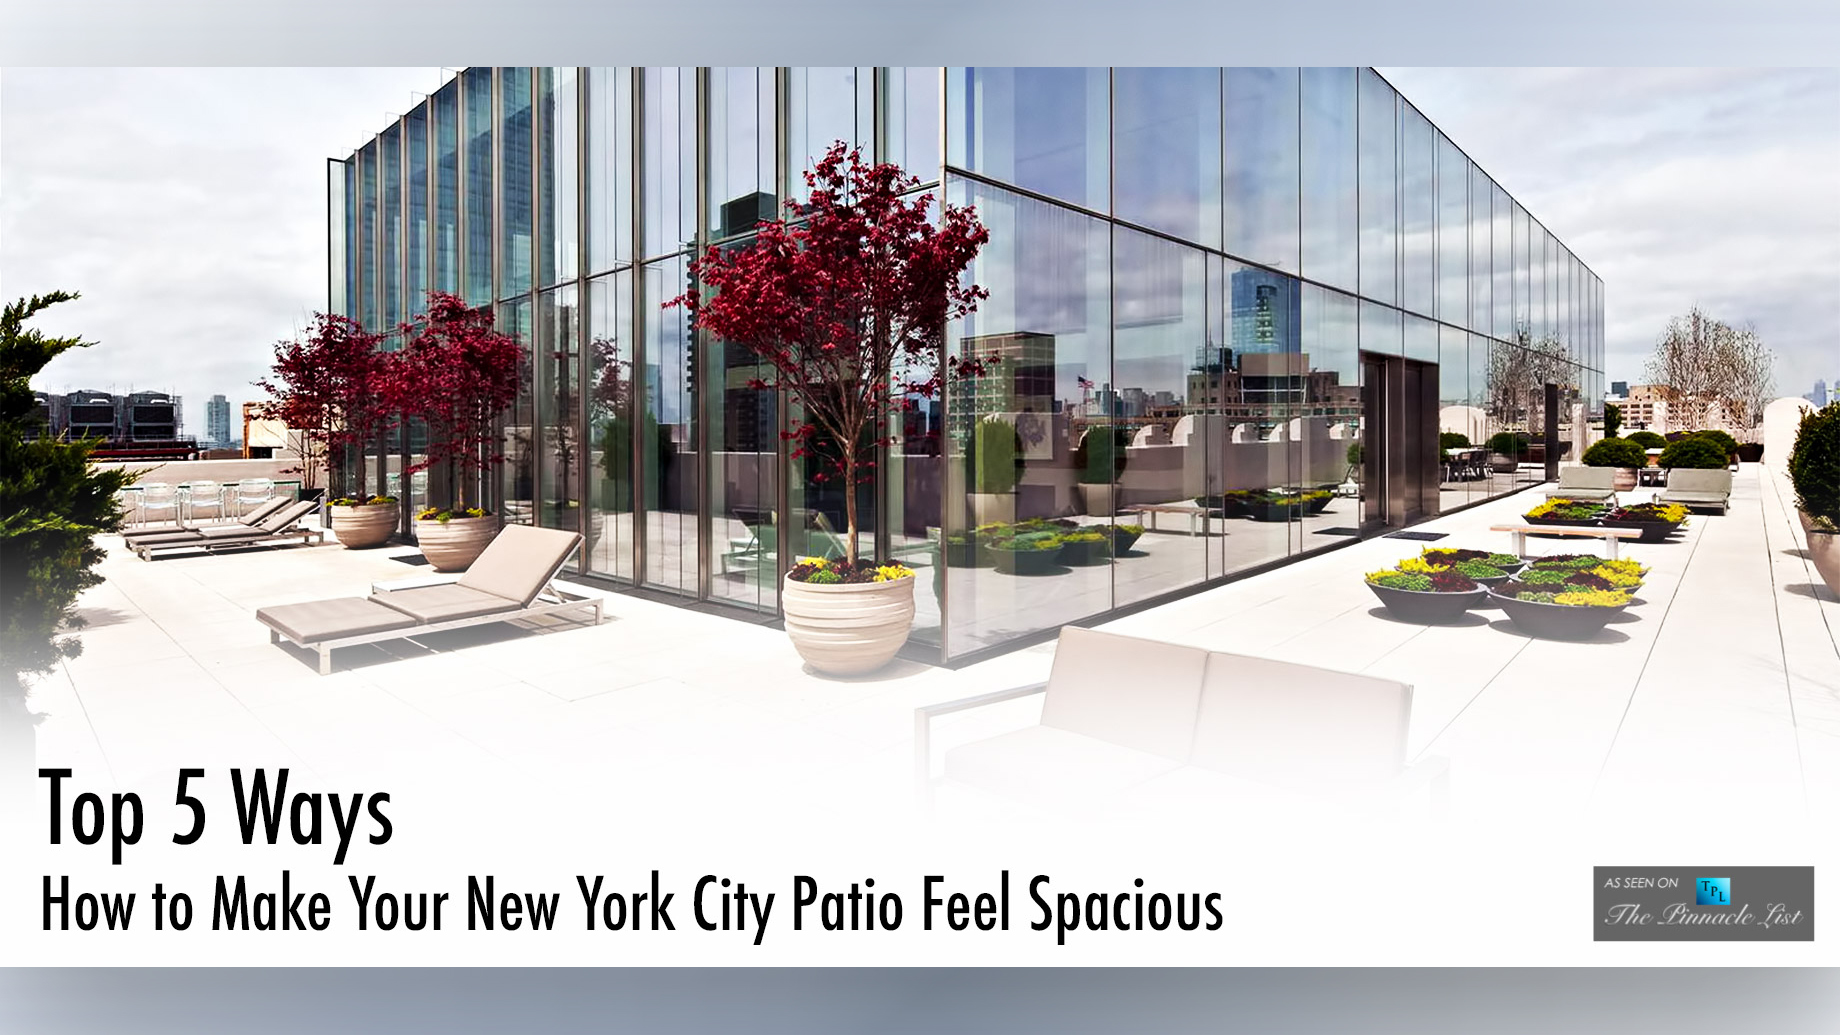 Top 5 Ways to Make Your New York City Patio Feel Spacious